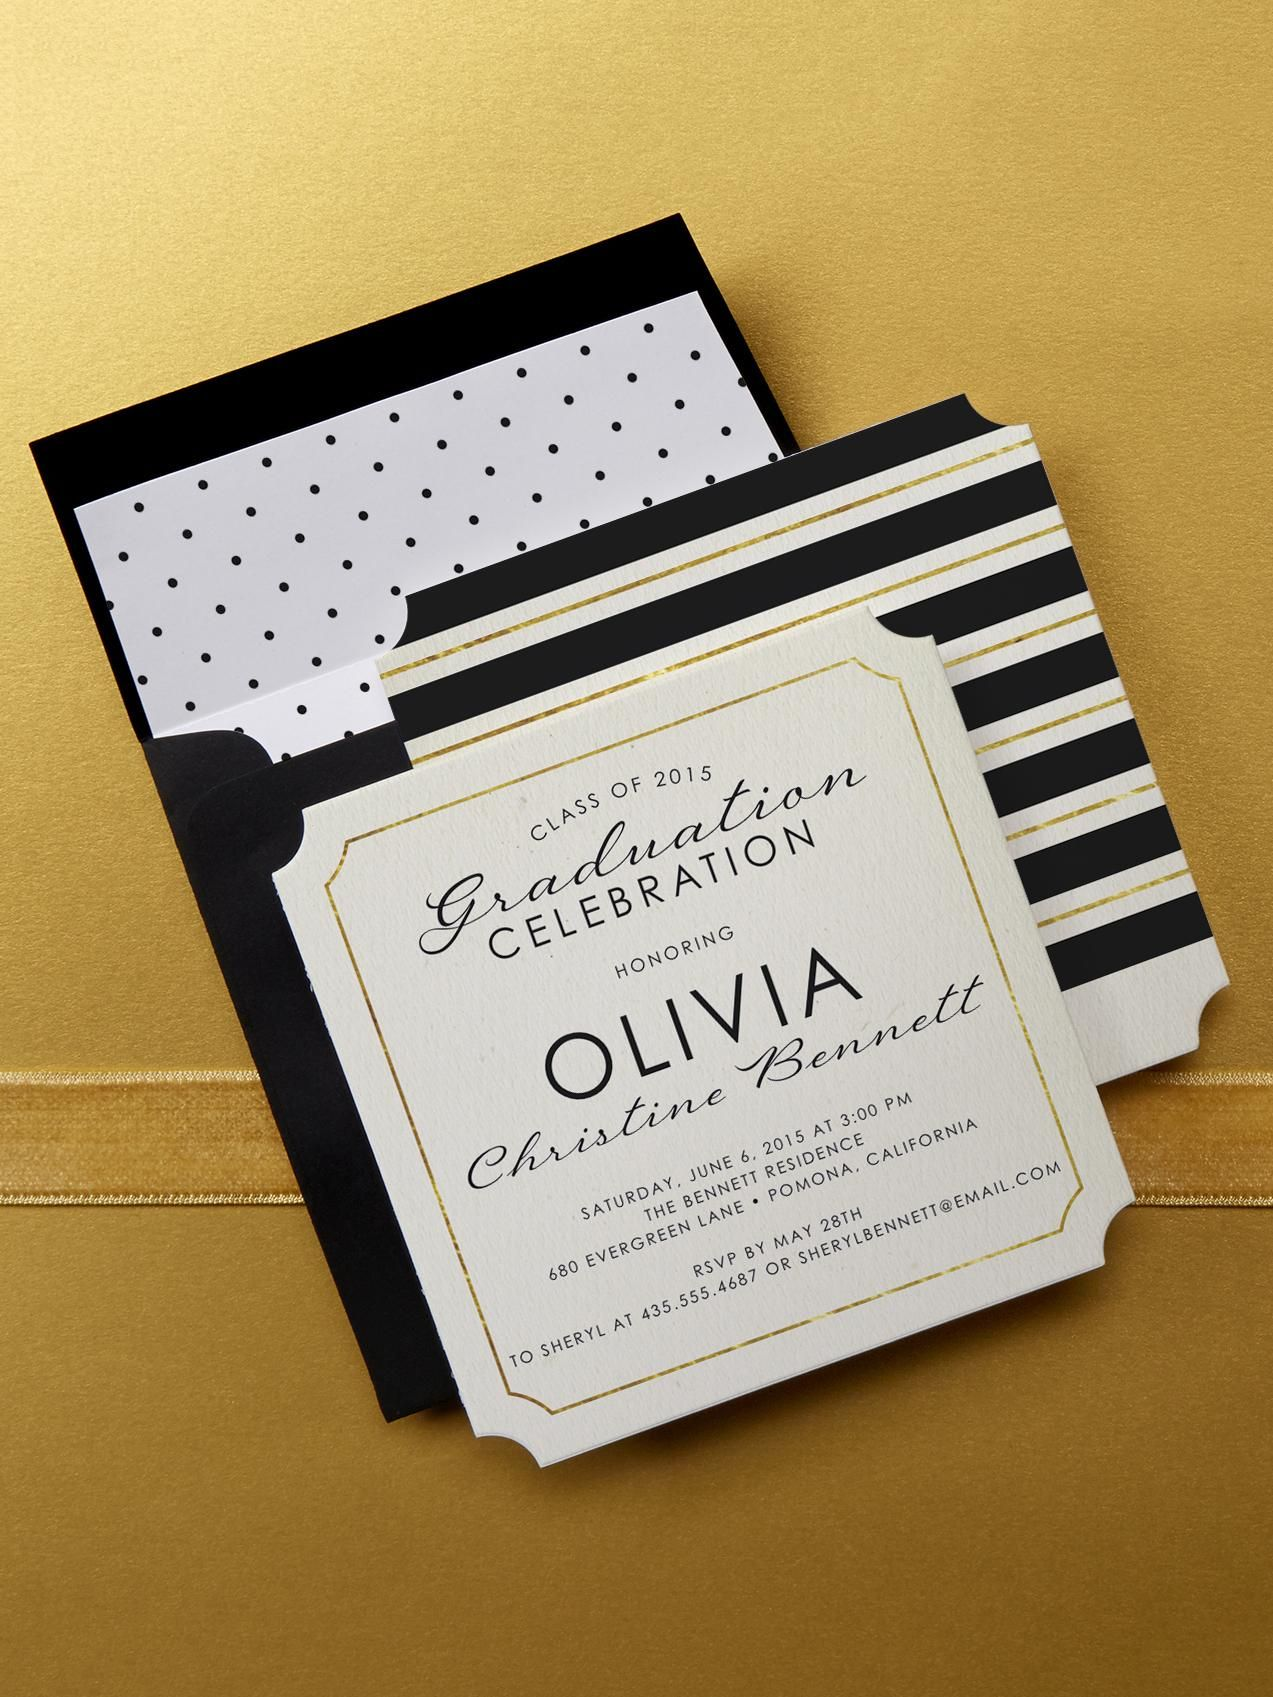 Choose A Linen Graduation Invitation Design At Tiny Prints To Make Your  Graduation Feel Special This